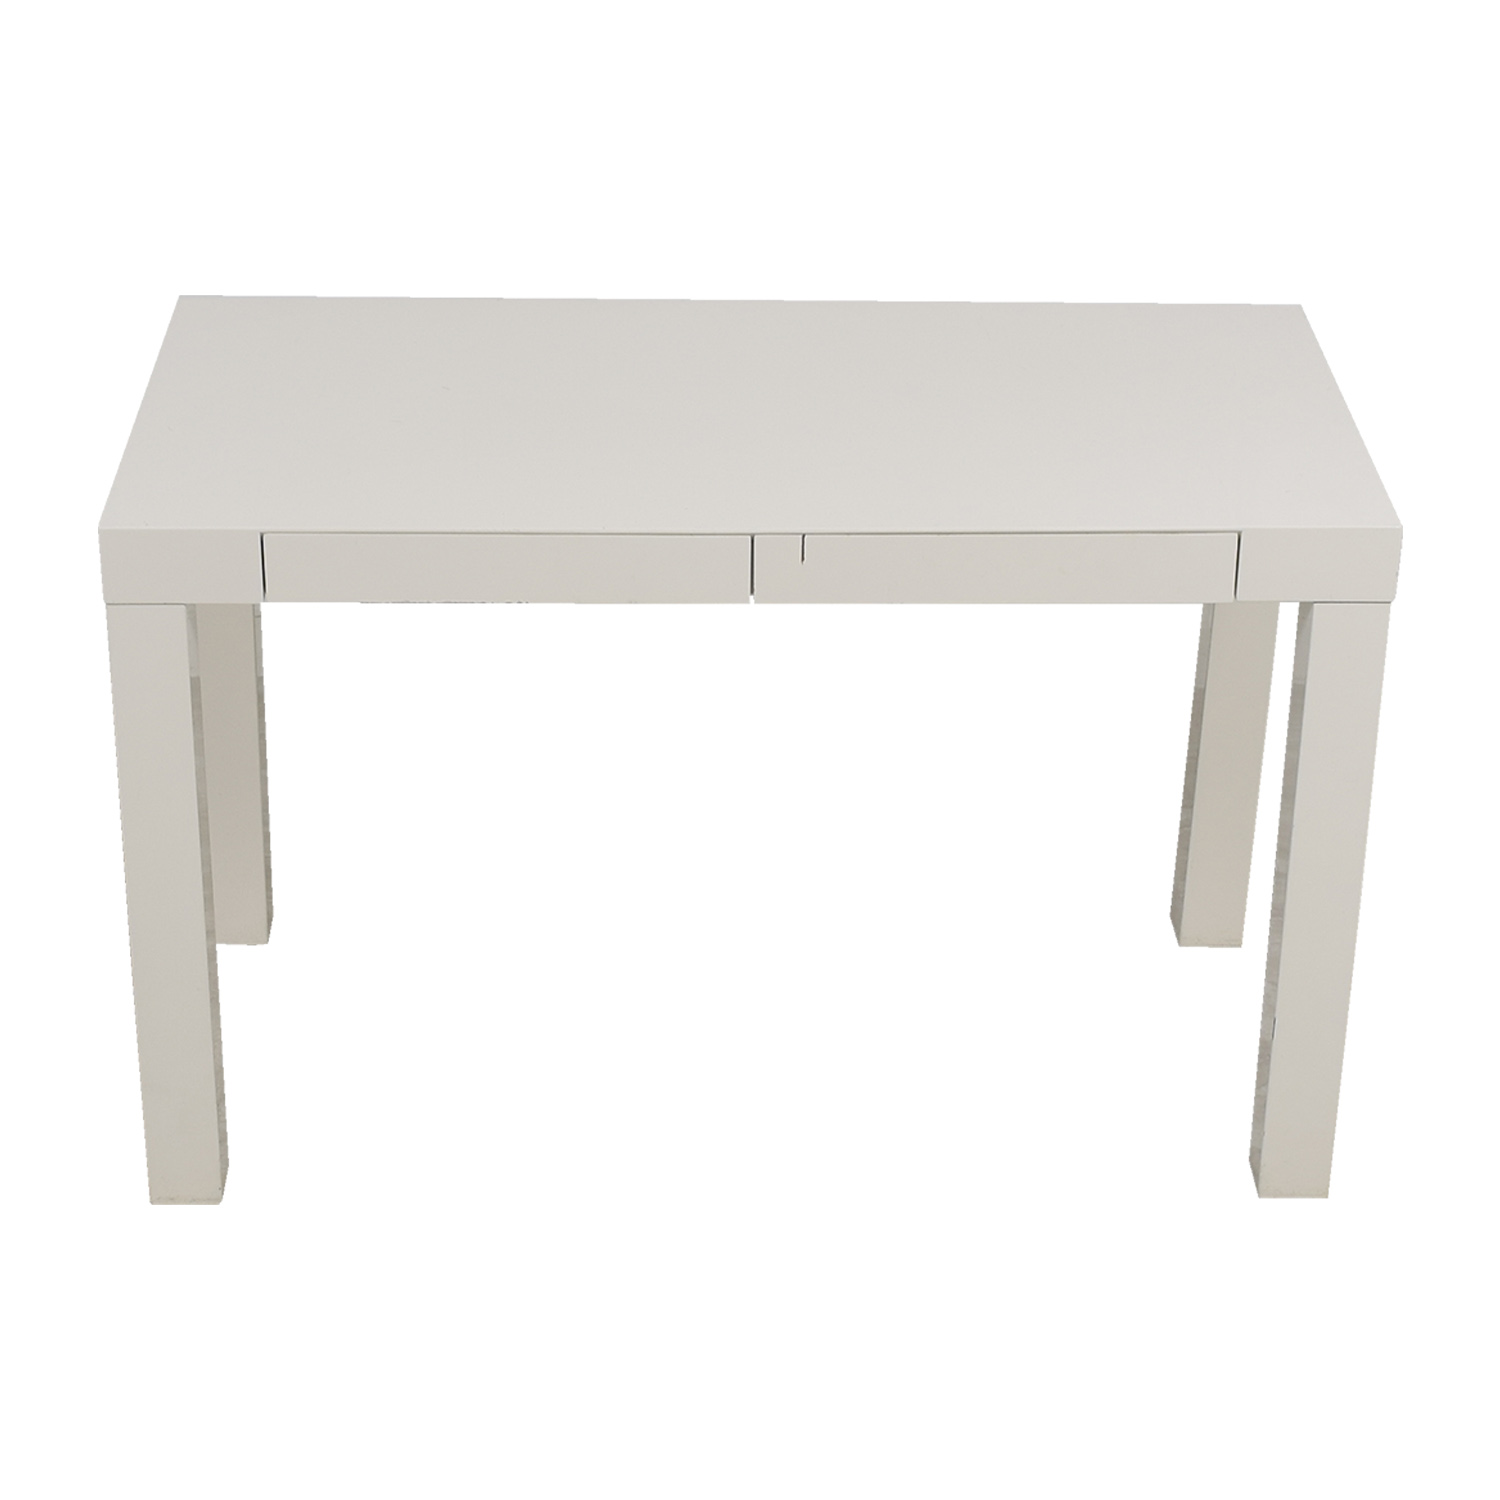 West Elm West Elm White Desk dimensions